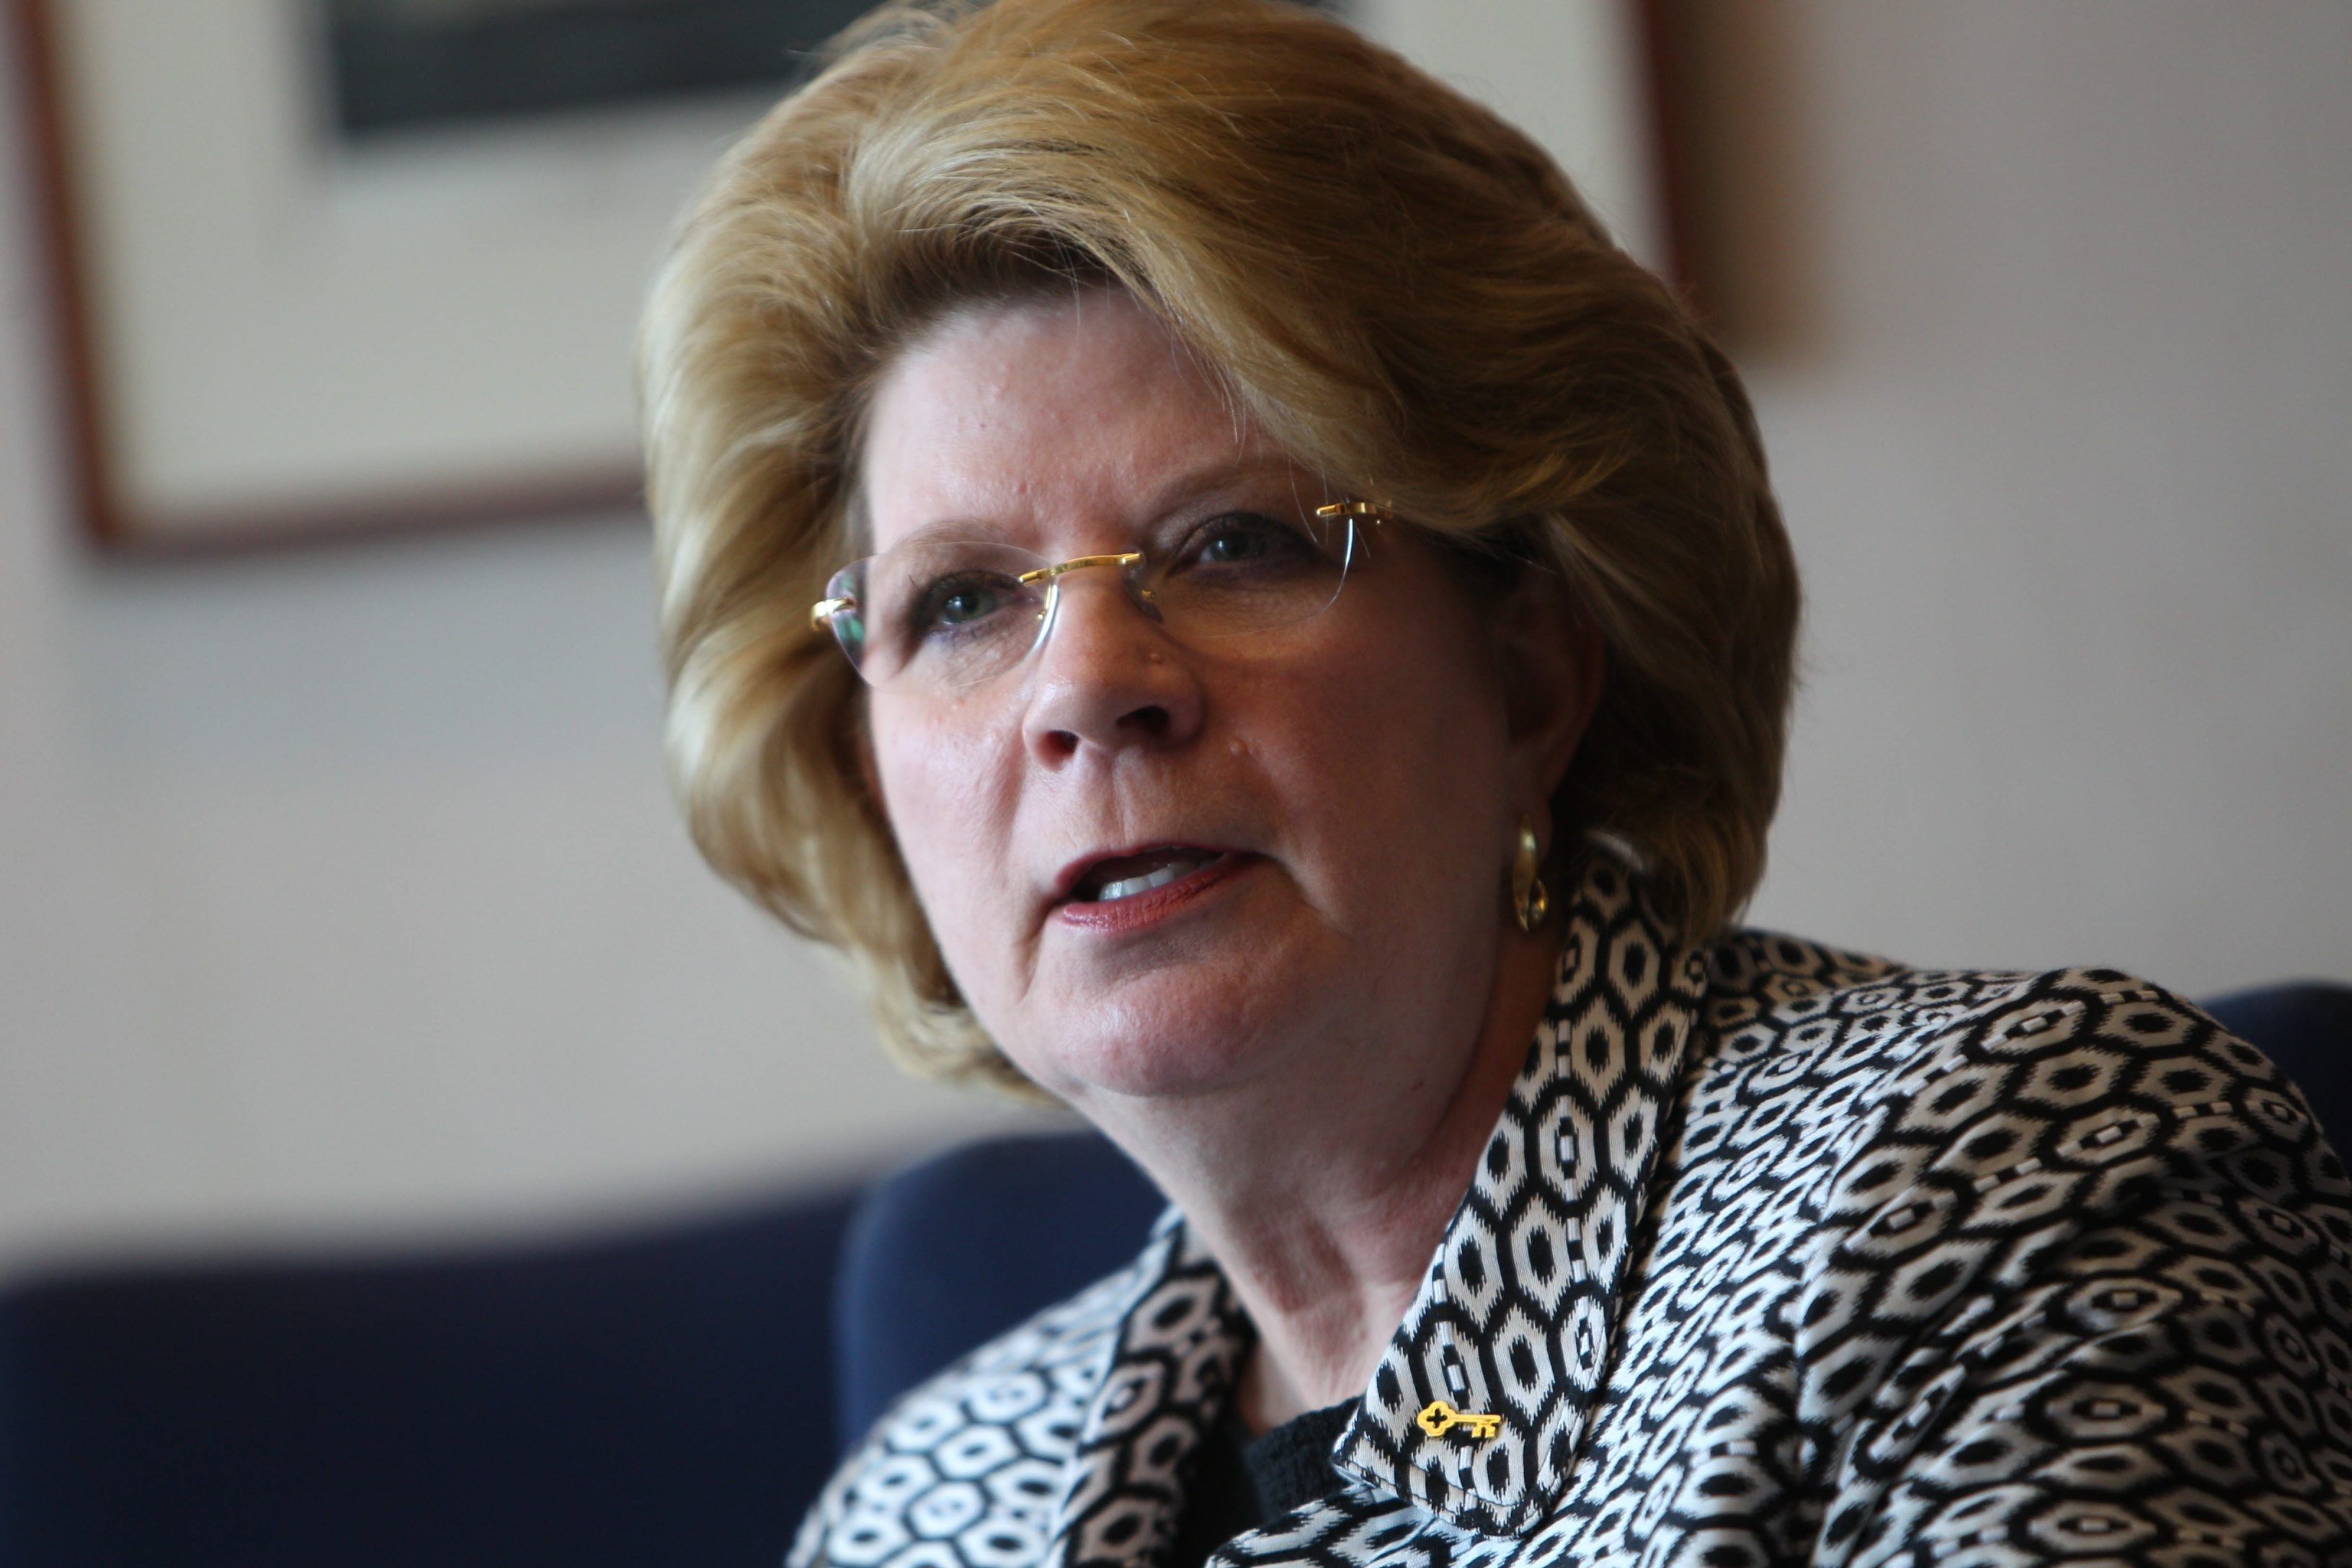 KeyCorp Chairwoman and CEO Beth Mooney's salary rose.